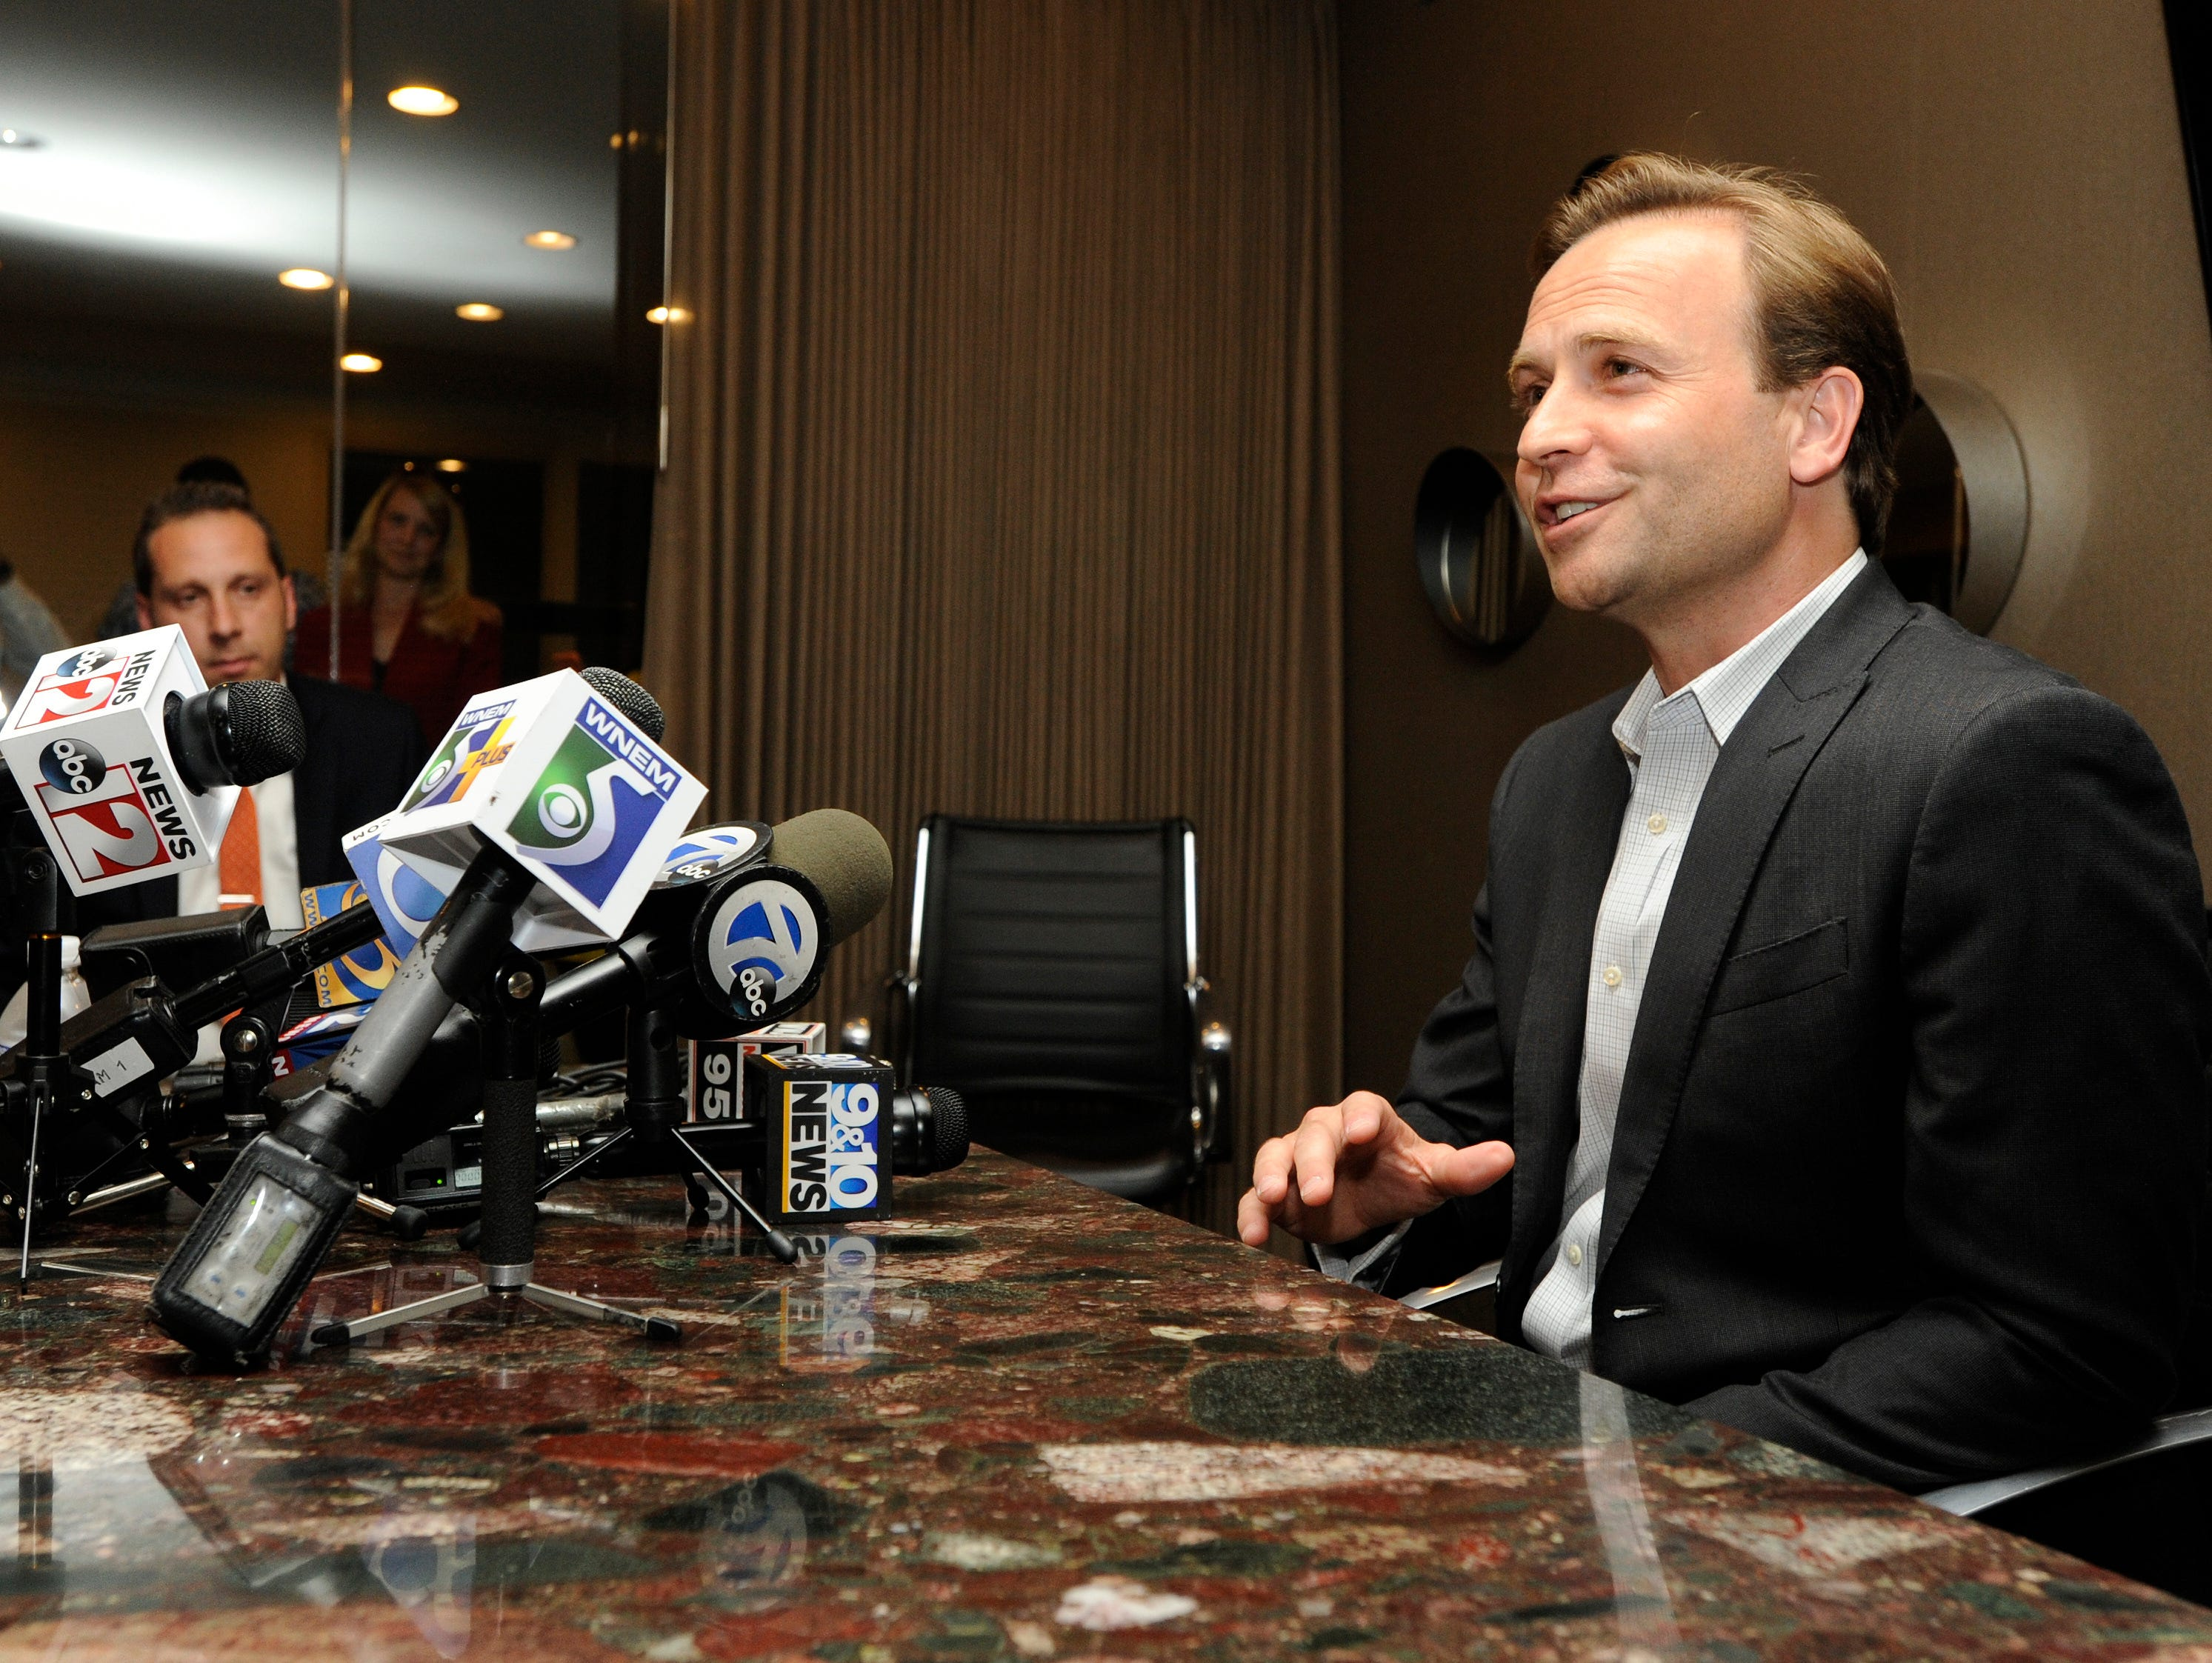 Michigan Lt. Gov. Brian Calley talks to the media during a news conference, Tuesday, Aug. 7, 2018, at Barbat Holdings in West Bloomfield, Mich. Calley is a gubernatorial candidate in Tuesday's primary.